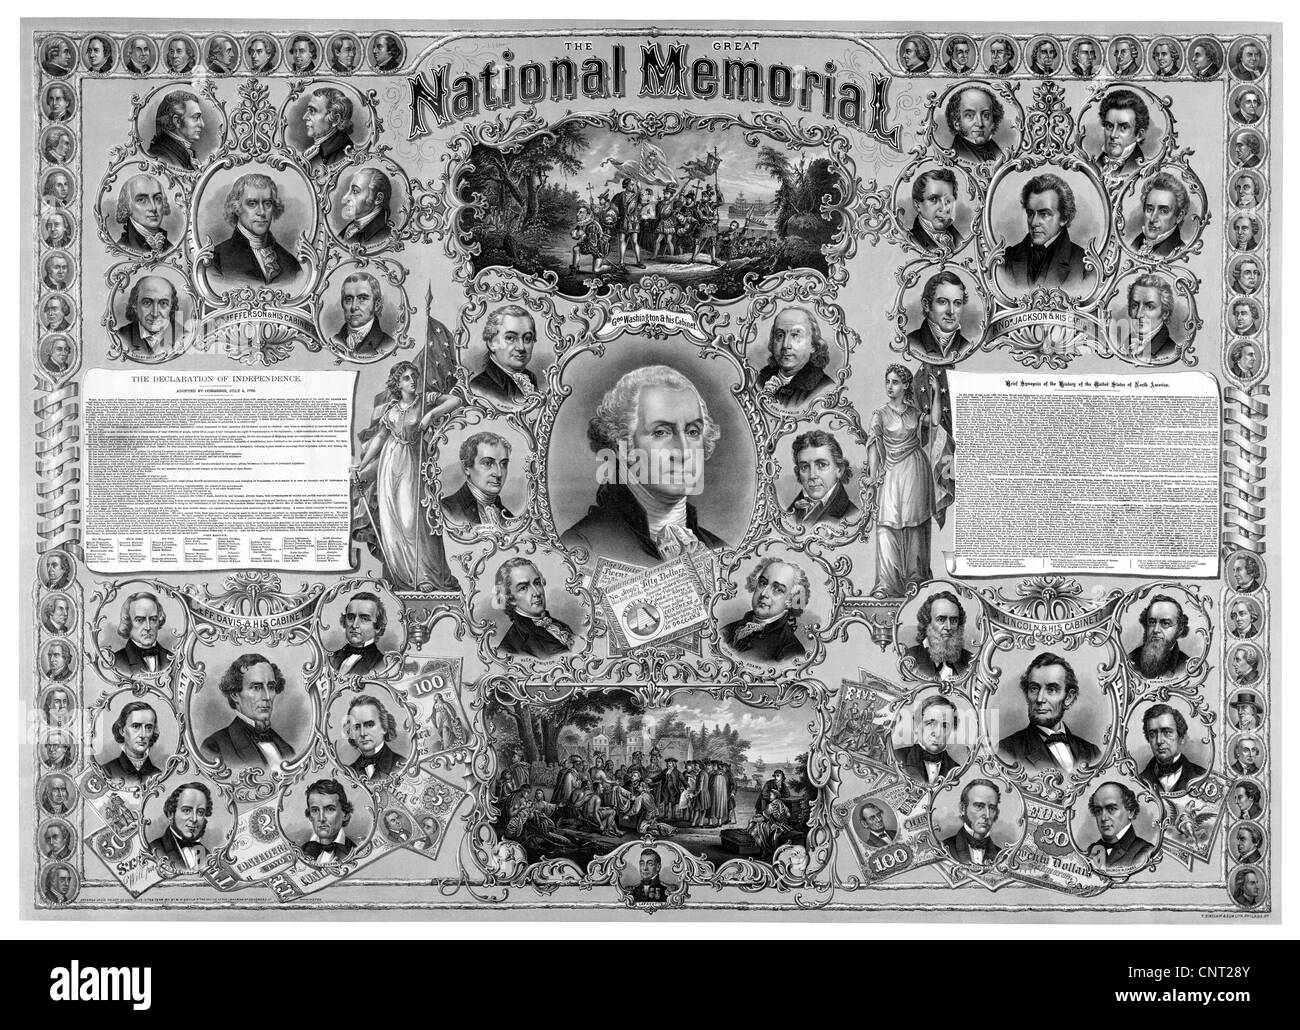 Digitally restored vintage American History print featuring great leaders from American history. - Stock Image